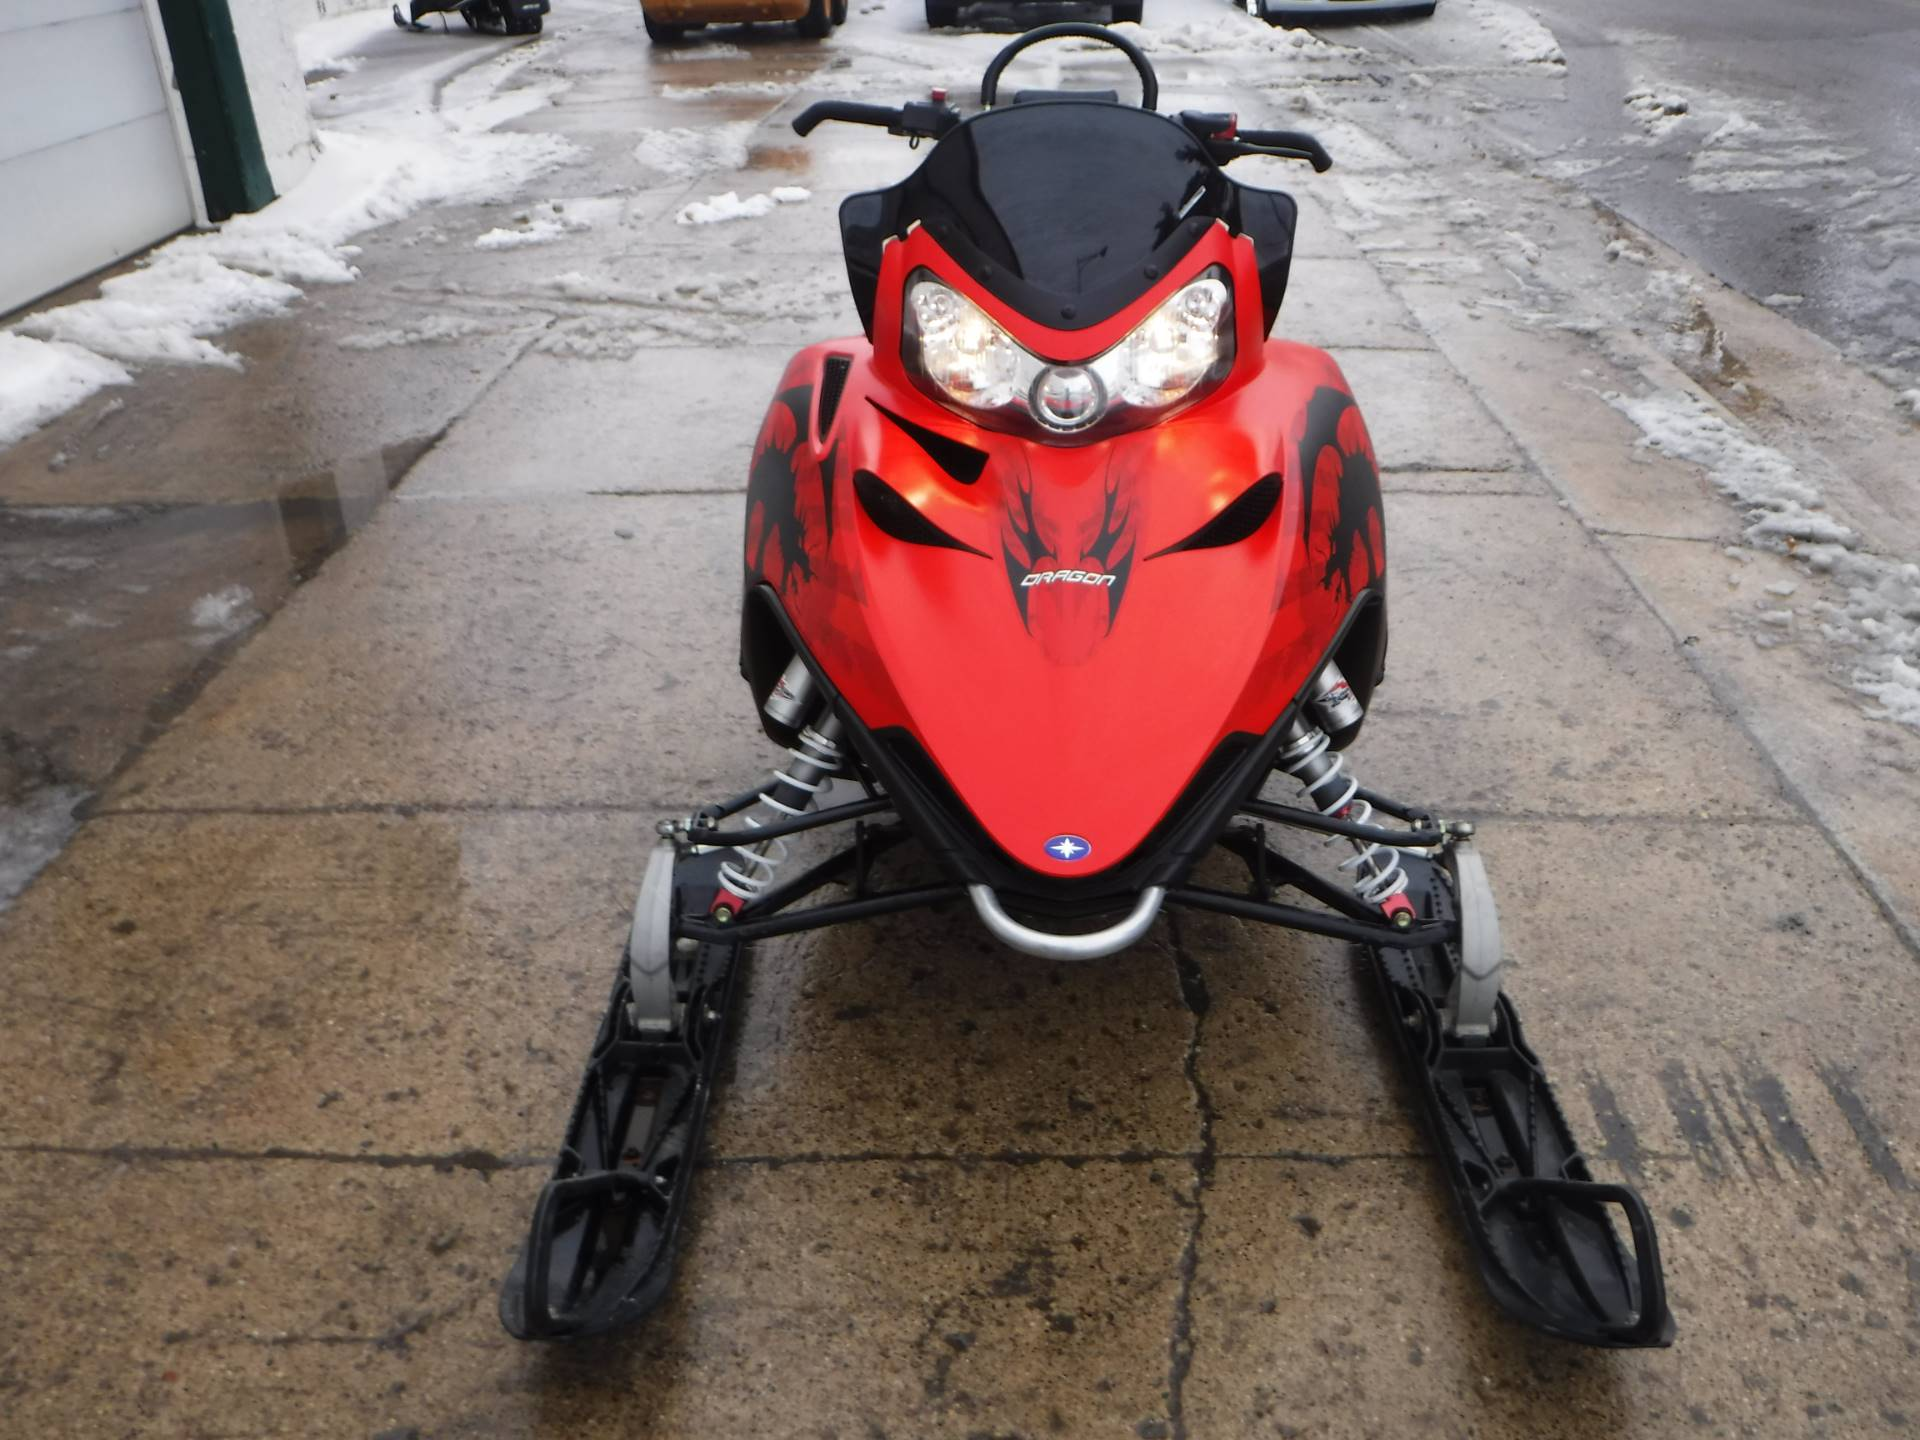 2010 Polaris 800 Dragon Switchback ES in Mazeppa, Minnesota - Photo 2